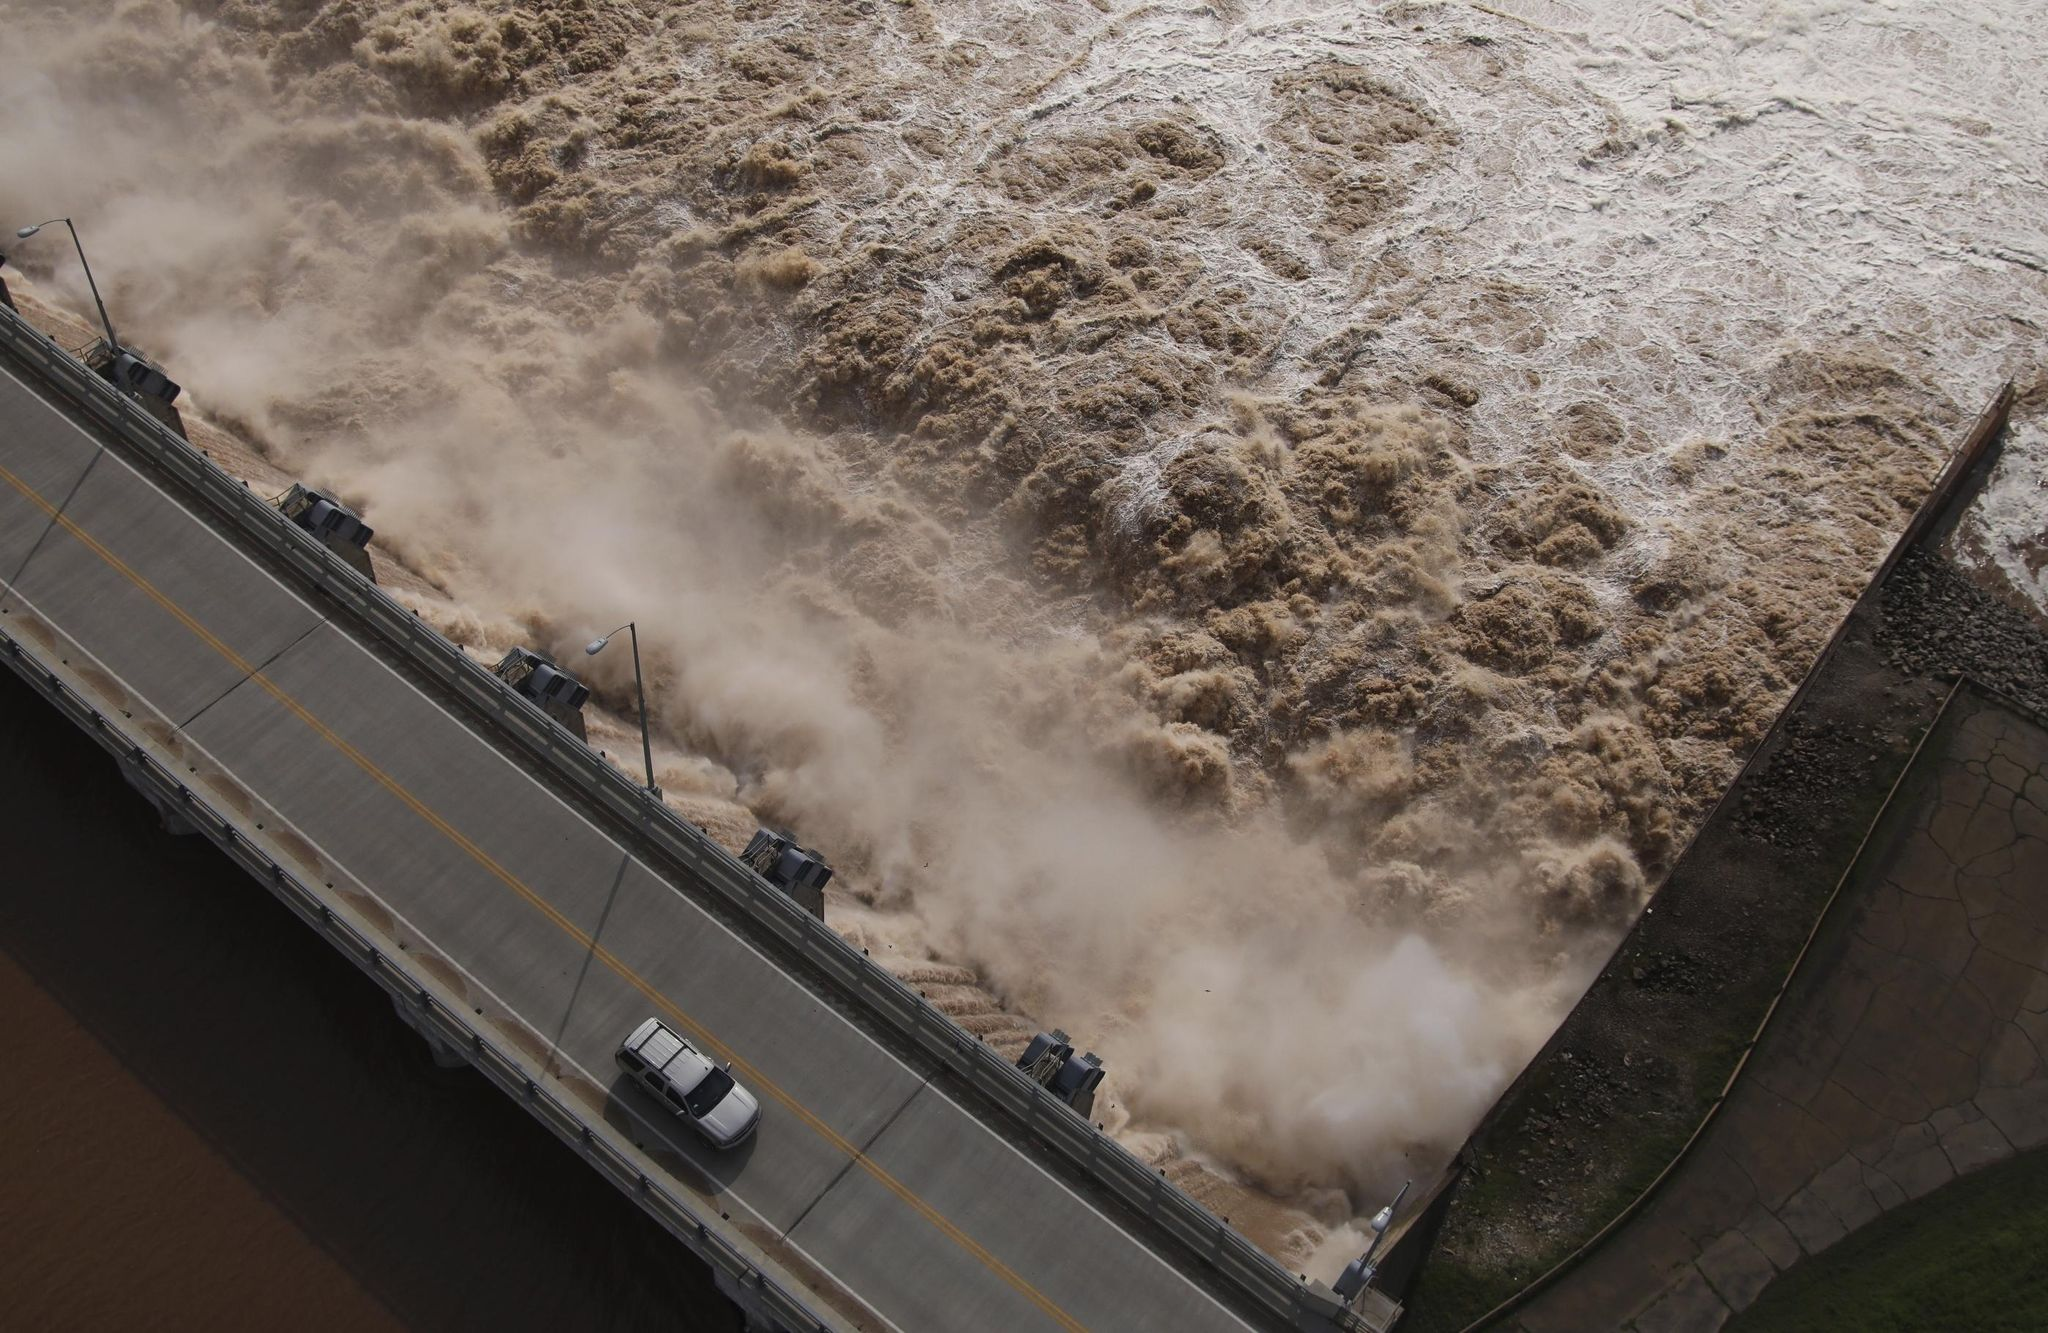 Some in Tulsa urged to leave home because of flooding risks